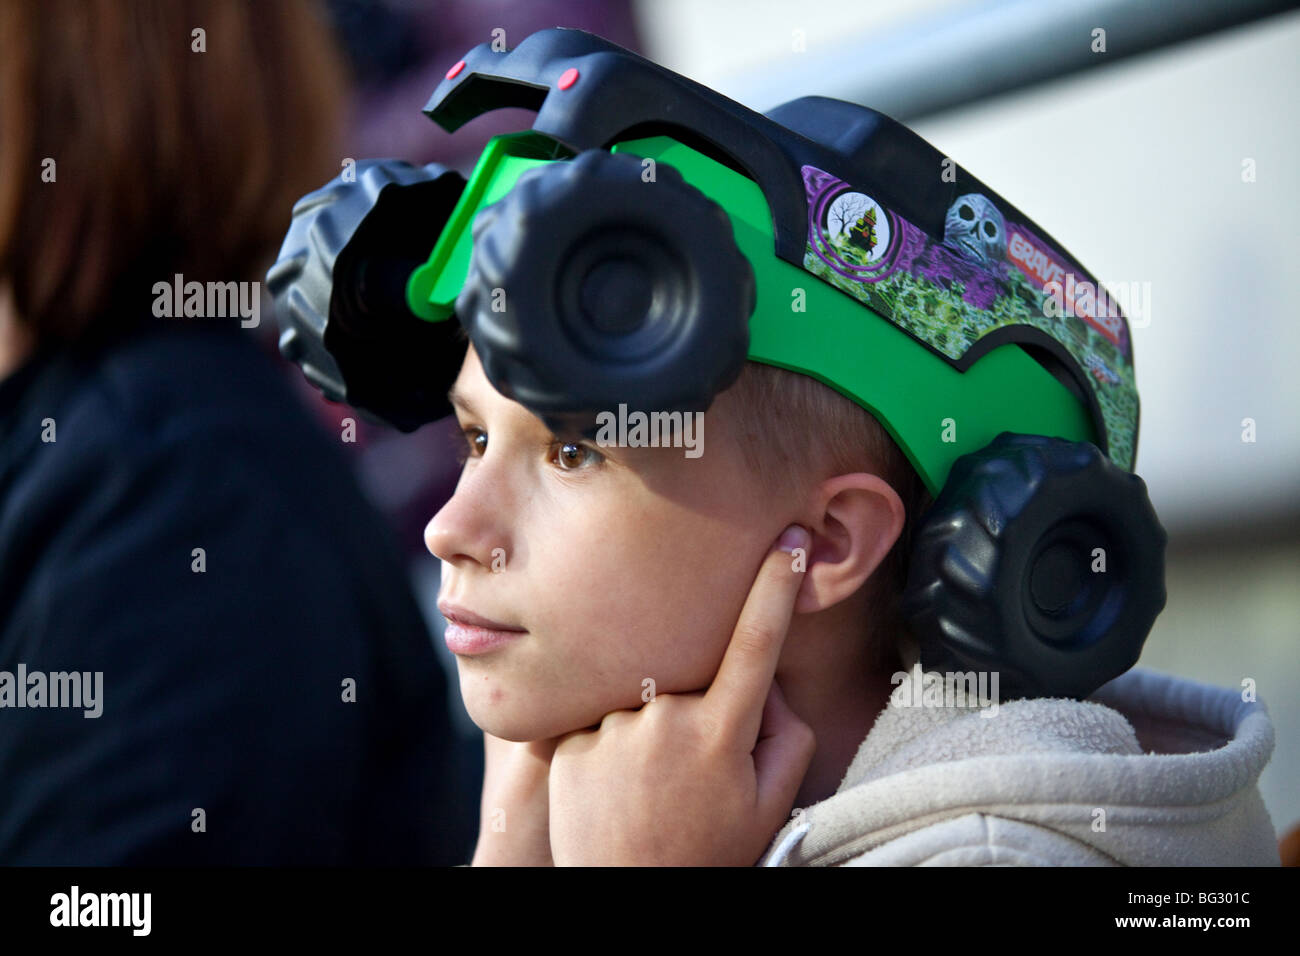 Monster Jam trucks Fan covering ears to protect himself from noise - Stock Image